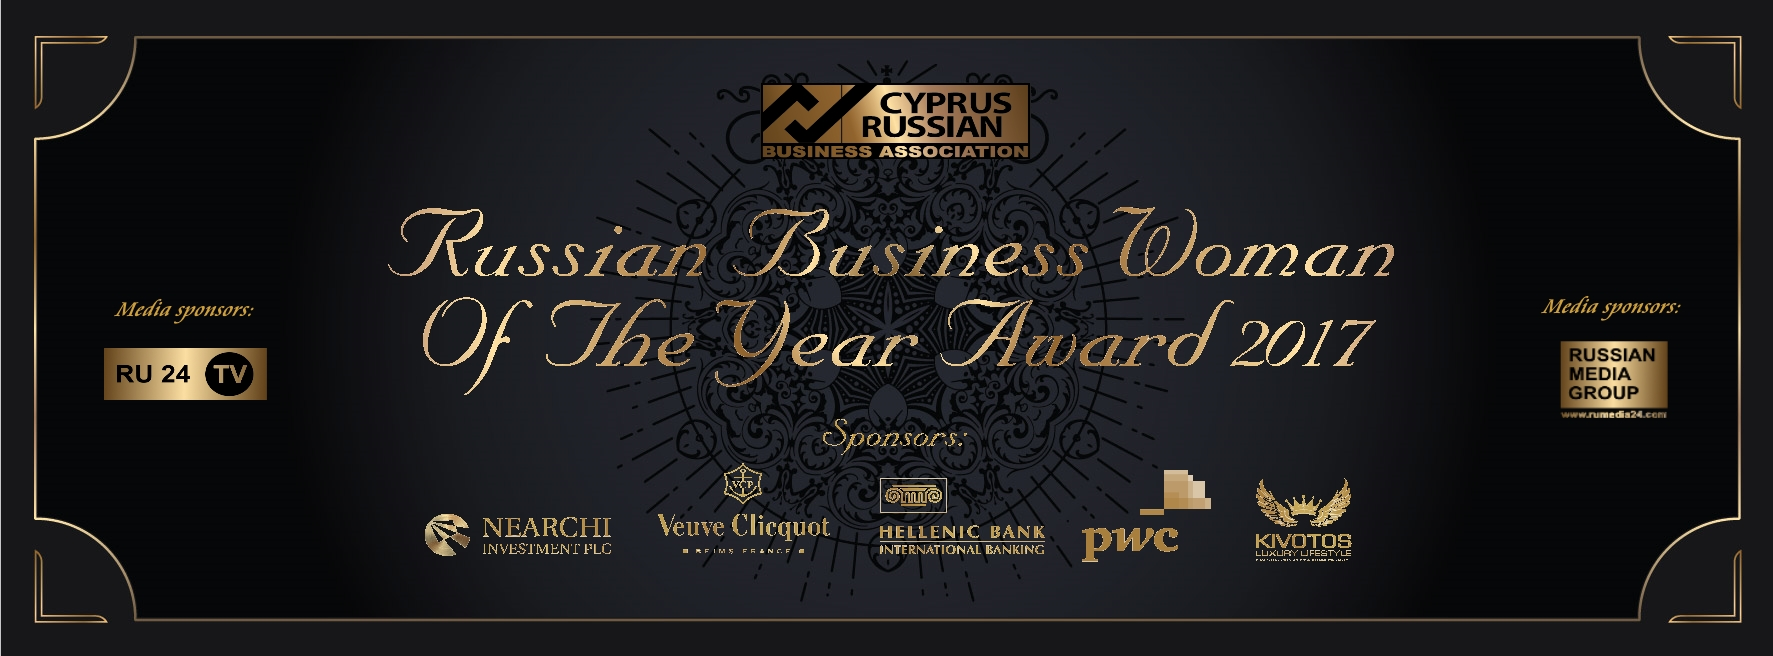 Событие года: Russian Business Woman of the Year 2017.